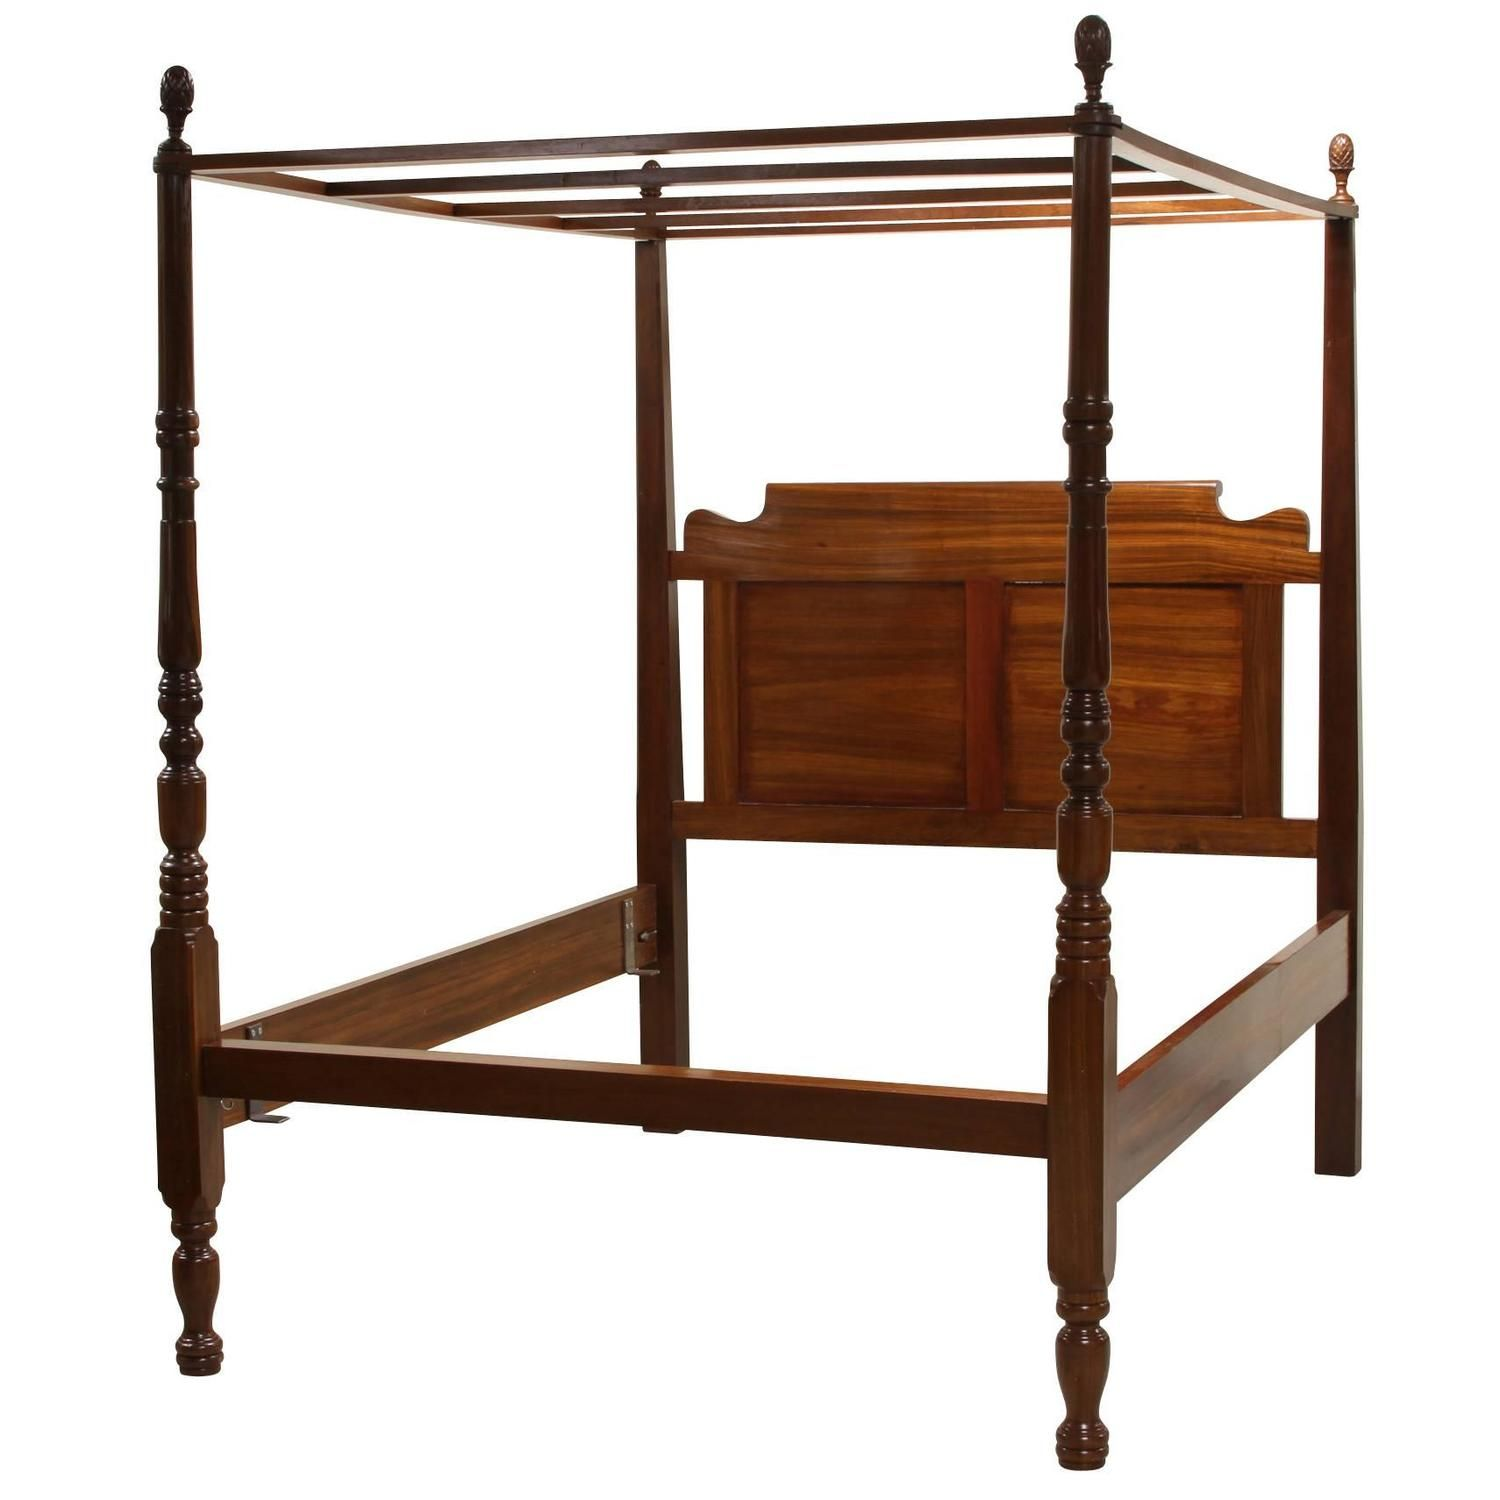 Very Fine Solid Mahogany Queen Canopy Bed  sc 1 st  Pinterest & Very Fine Solid Mahogany Queen Canopy Bed | Queen canopy bed ...